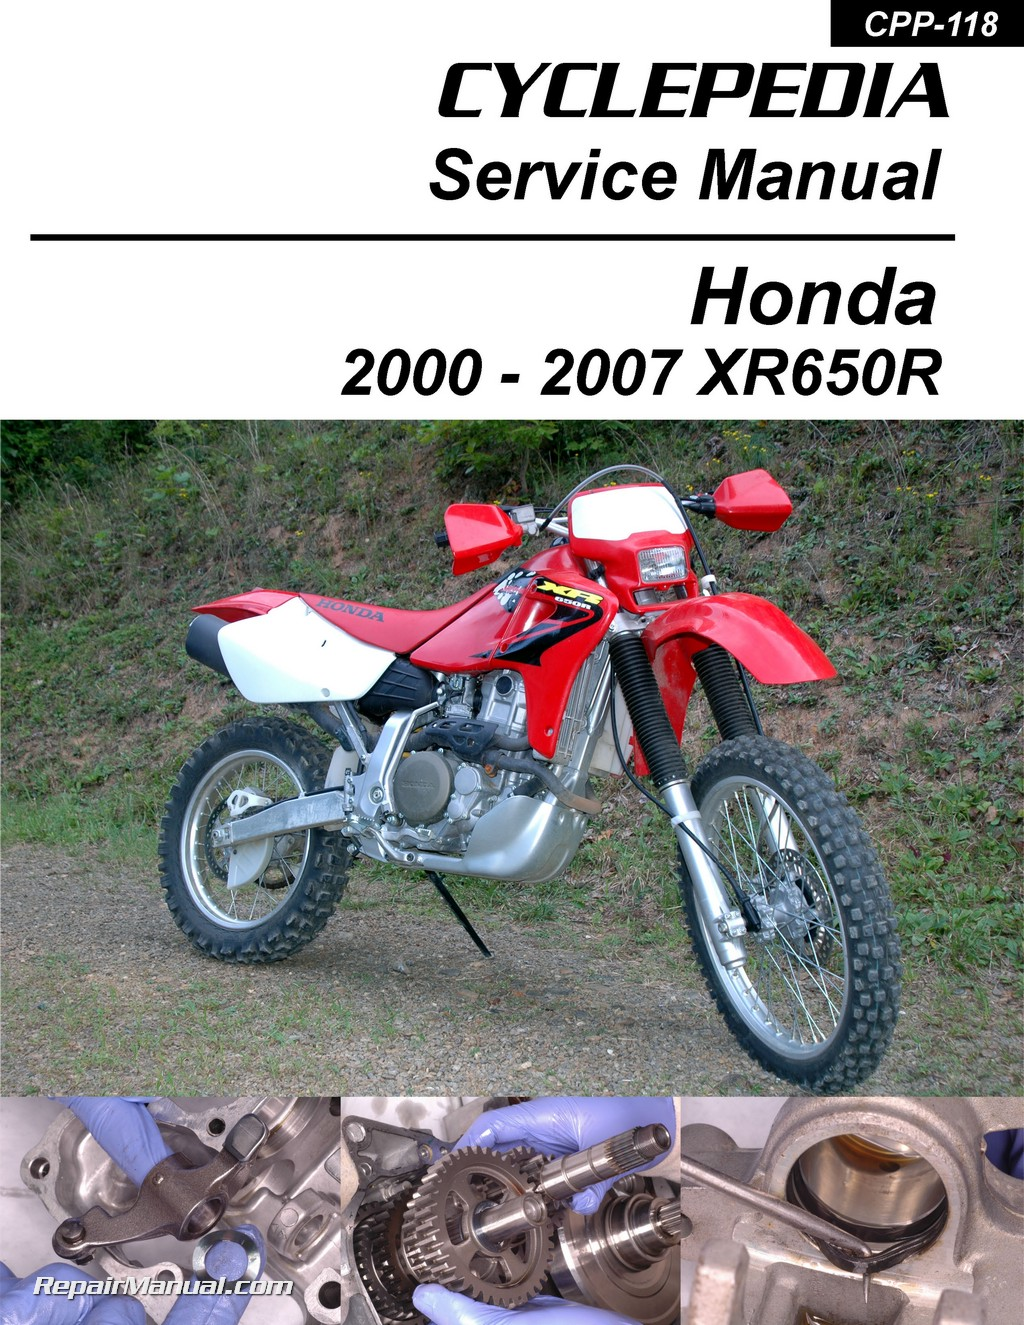 Honda Xr650r Wiring Diagram On Xr650r Tusk Wiring Diagram